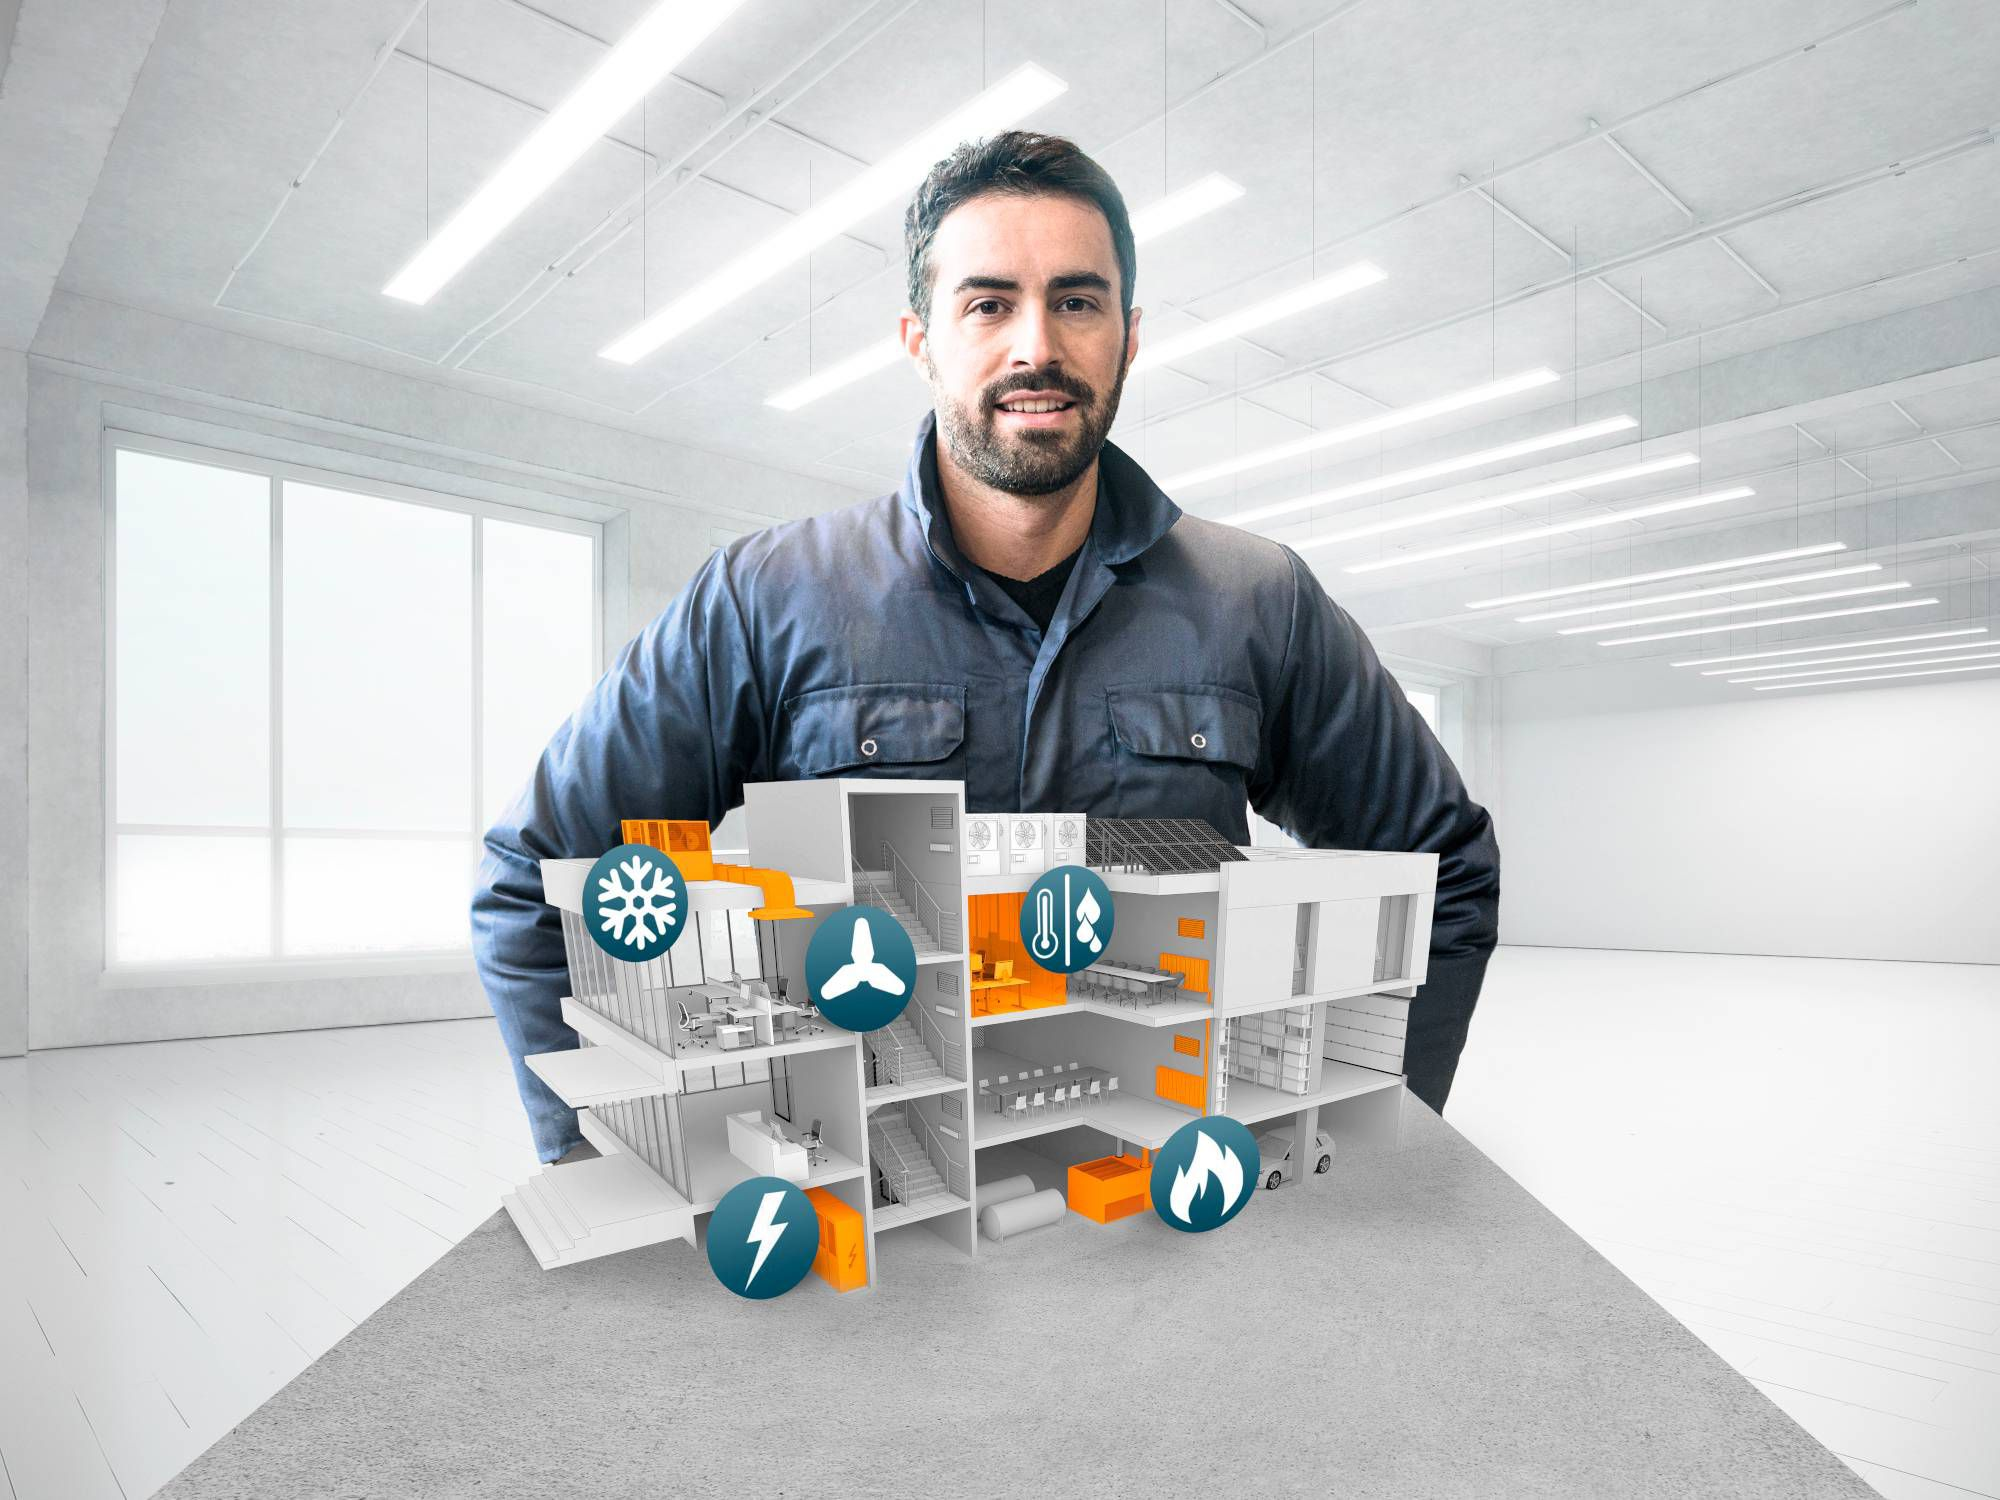 Guarantee building efficiency and comfort with measurement solutions from Testo